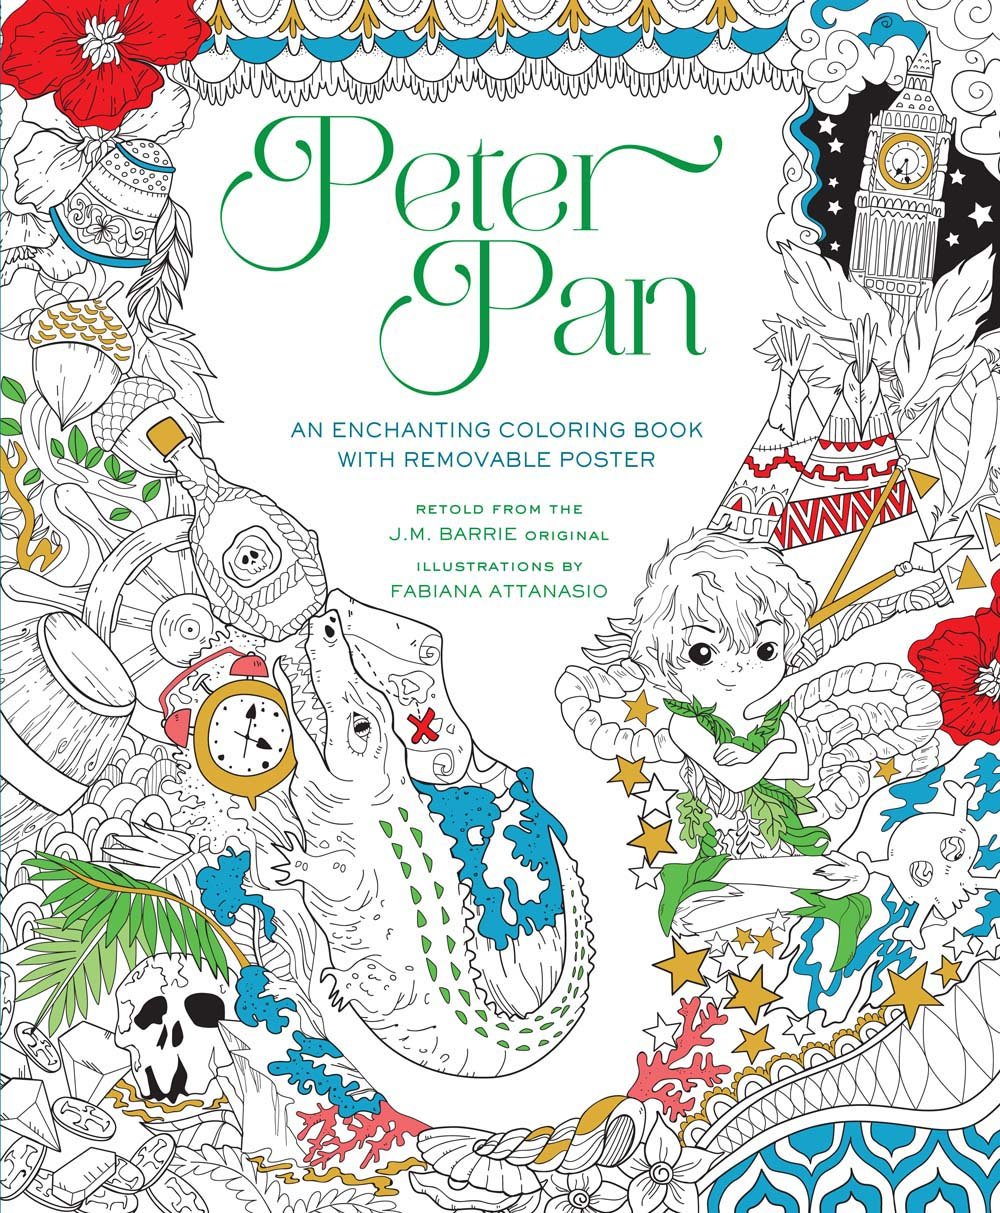 Peter Pan Coloring Book - Fabiana Attanasio